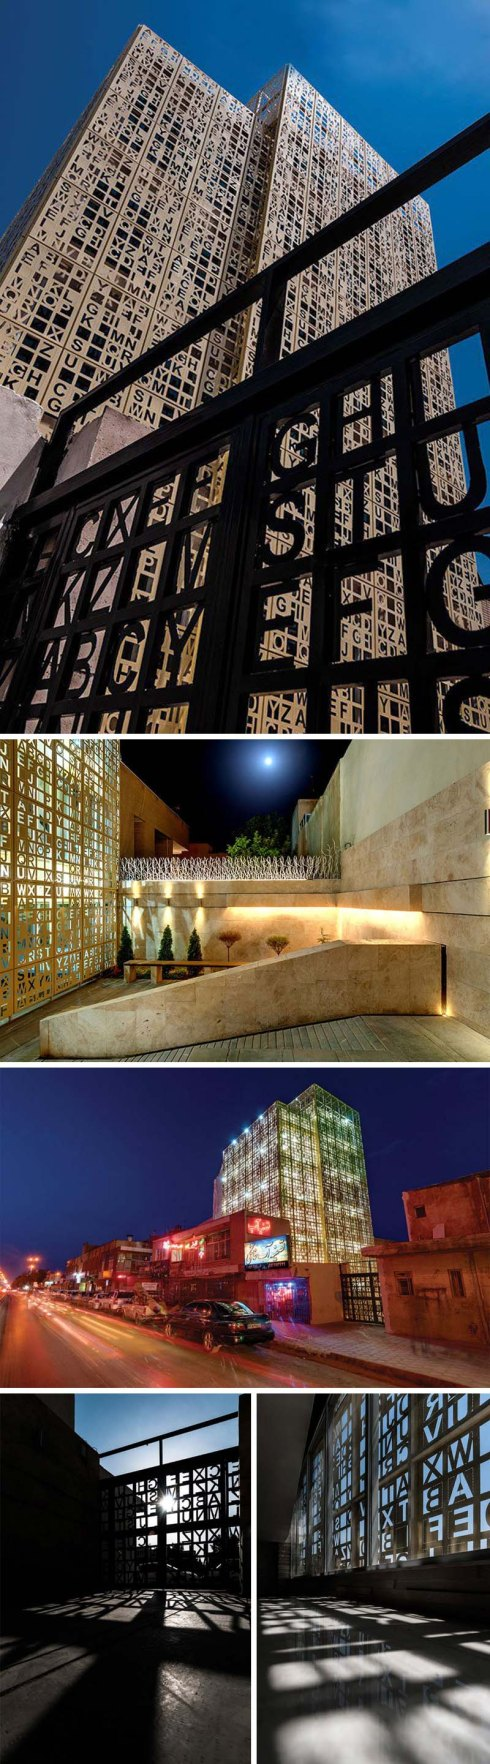 Gooyesh Language Institute, Contemporary Iranian Architecture, Typographic exterior facade and gates, Ali Karbaschi architect, Cool building exterior with alphabet cutouts